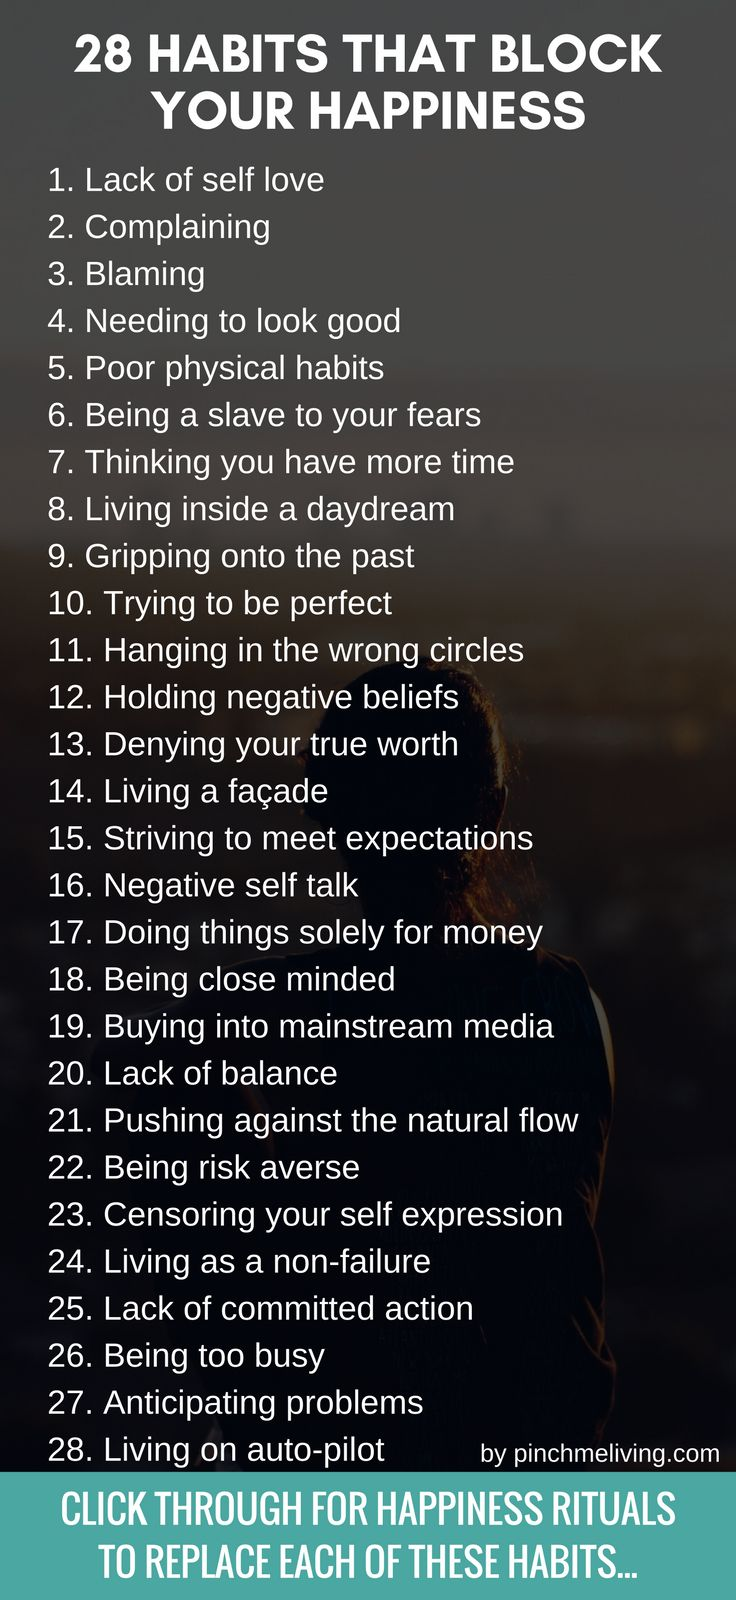 //28 Habits that block your happiness & how to let them go. Click through for the happiness rituals to replace these soul sucking habits. Plus a free pdf guide to download.